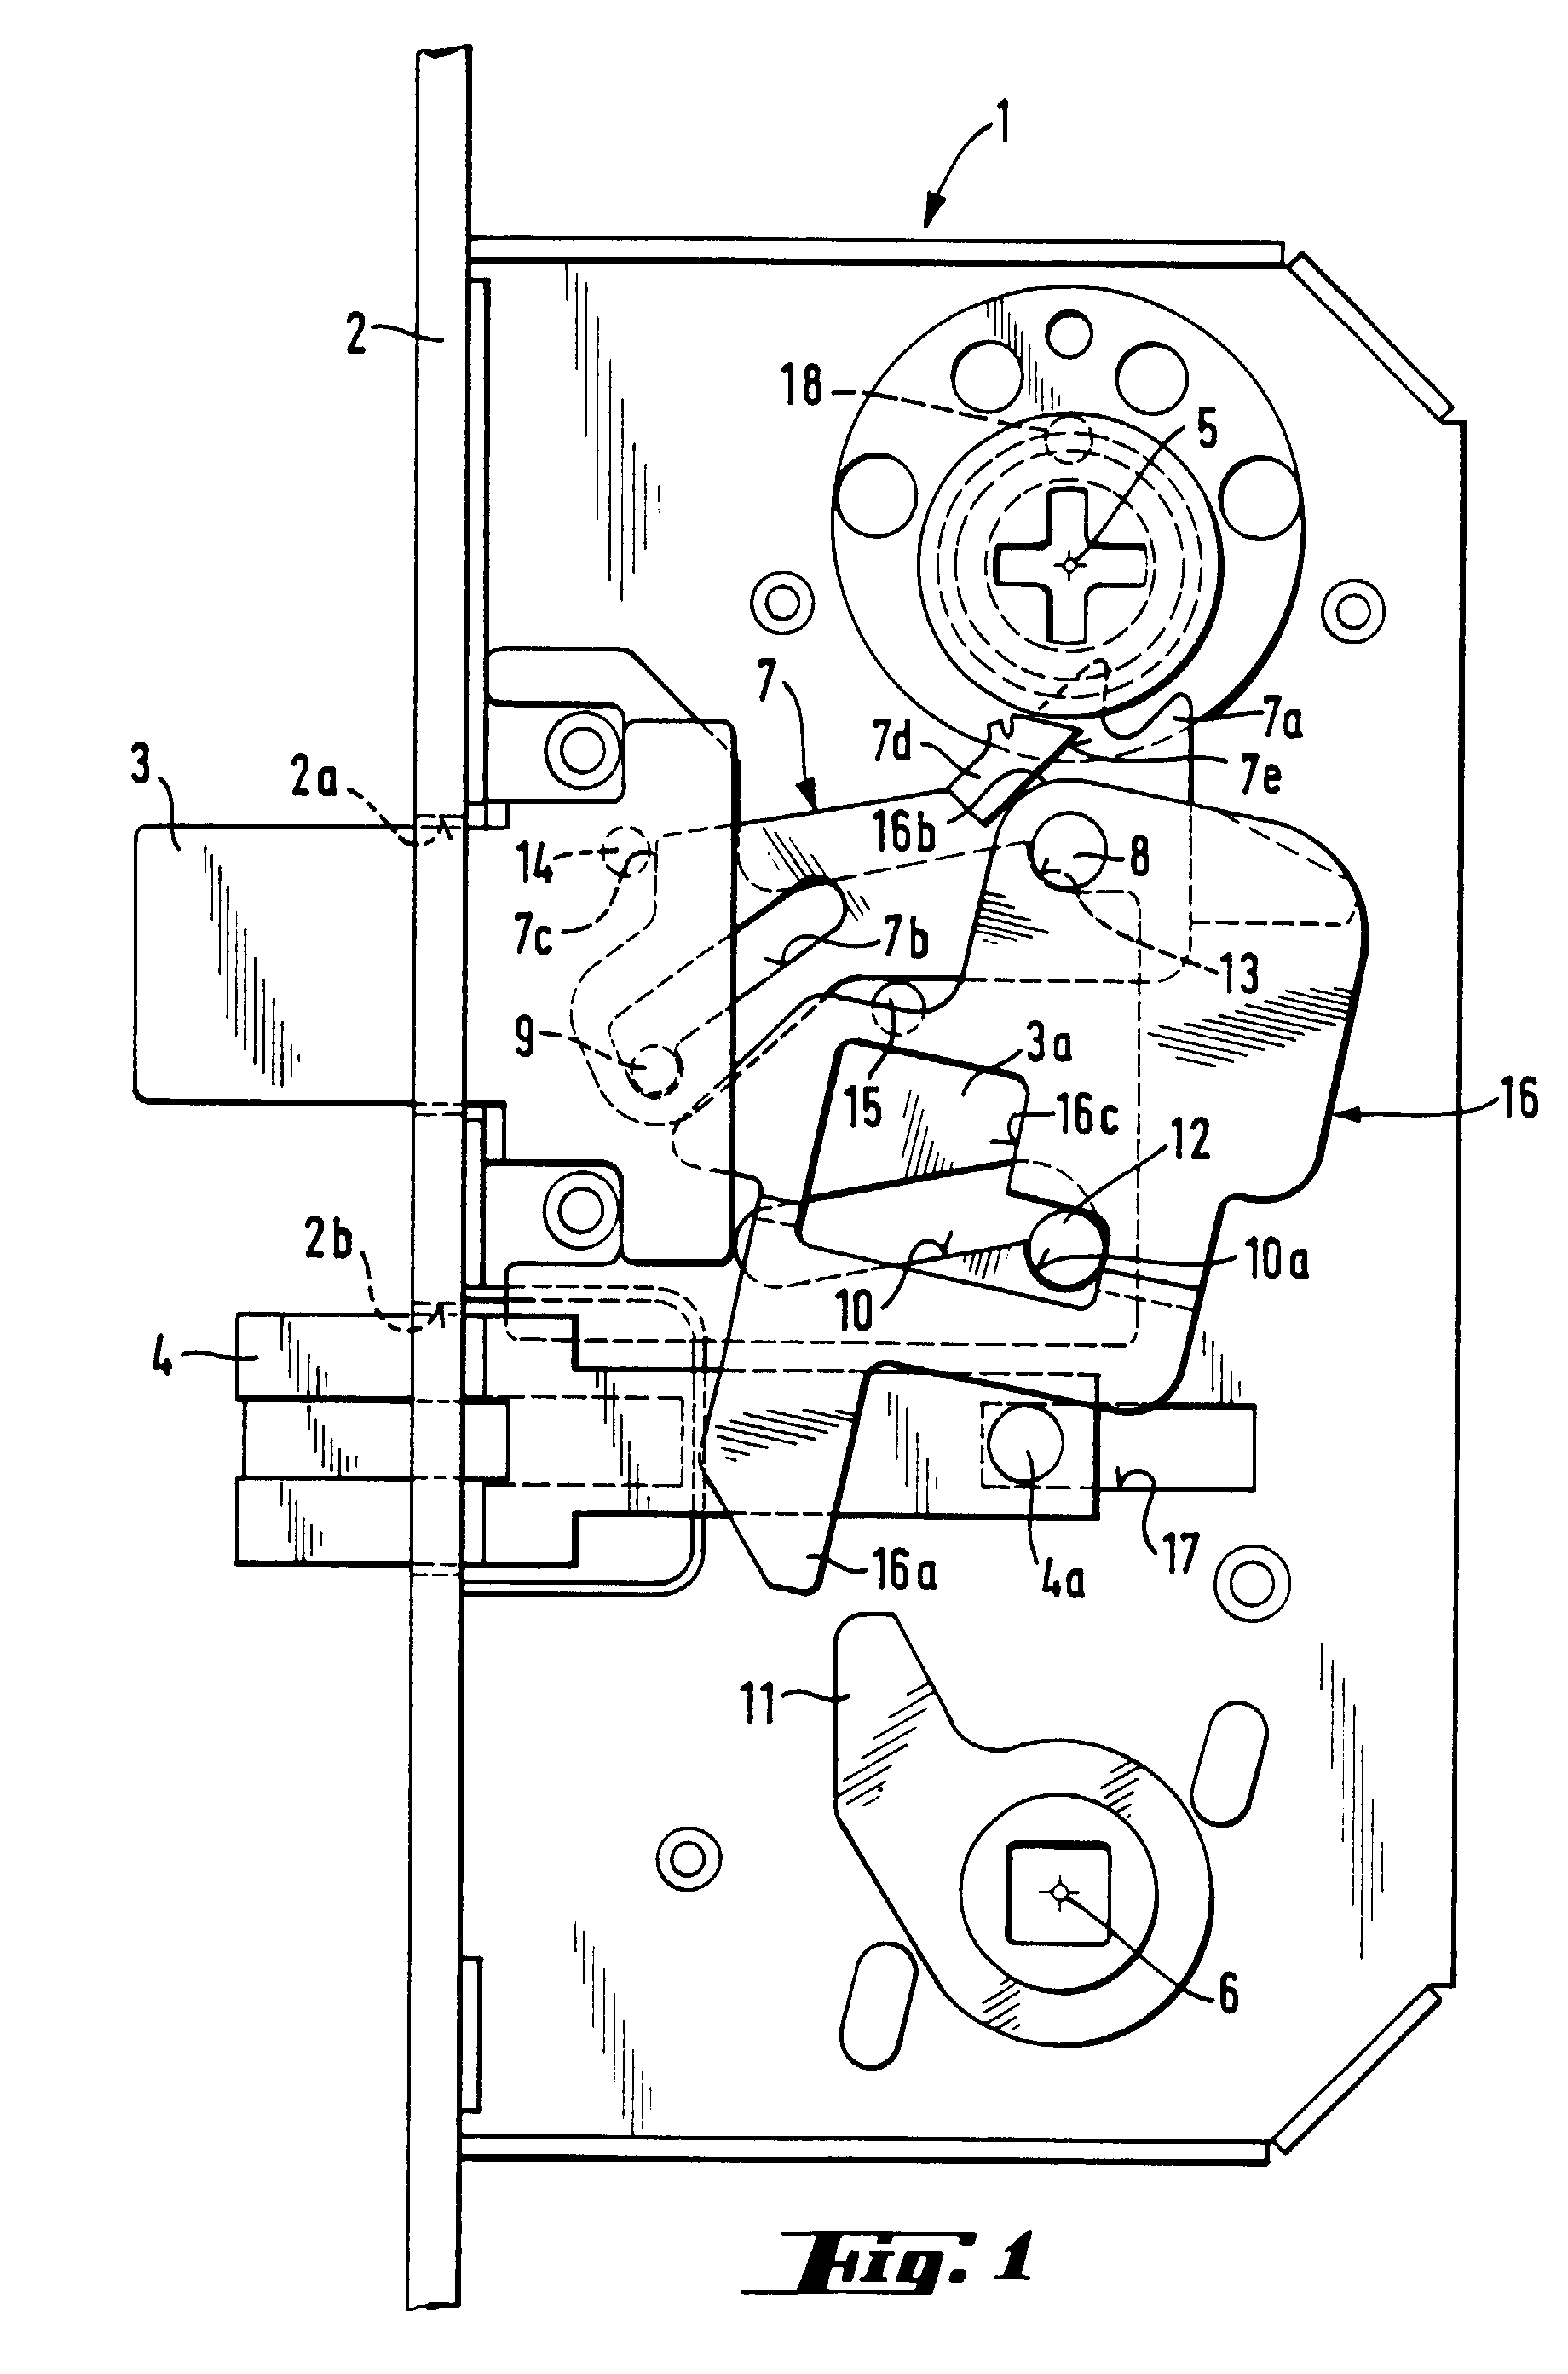 Car Latch Diagram Great Design Of Wiring 2002 Honda Accord Parts Door Imageresizertool Com Handle